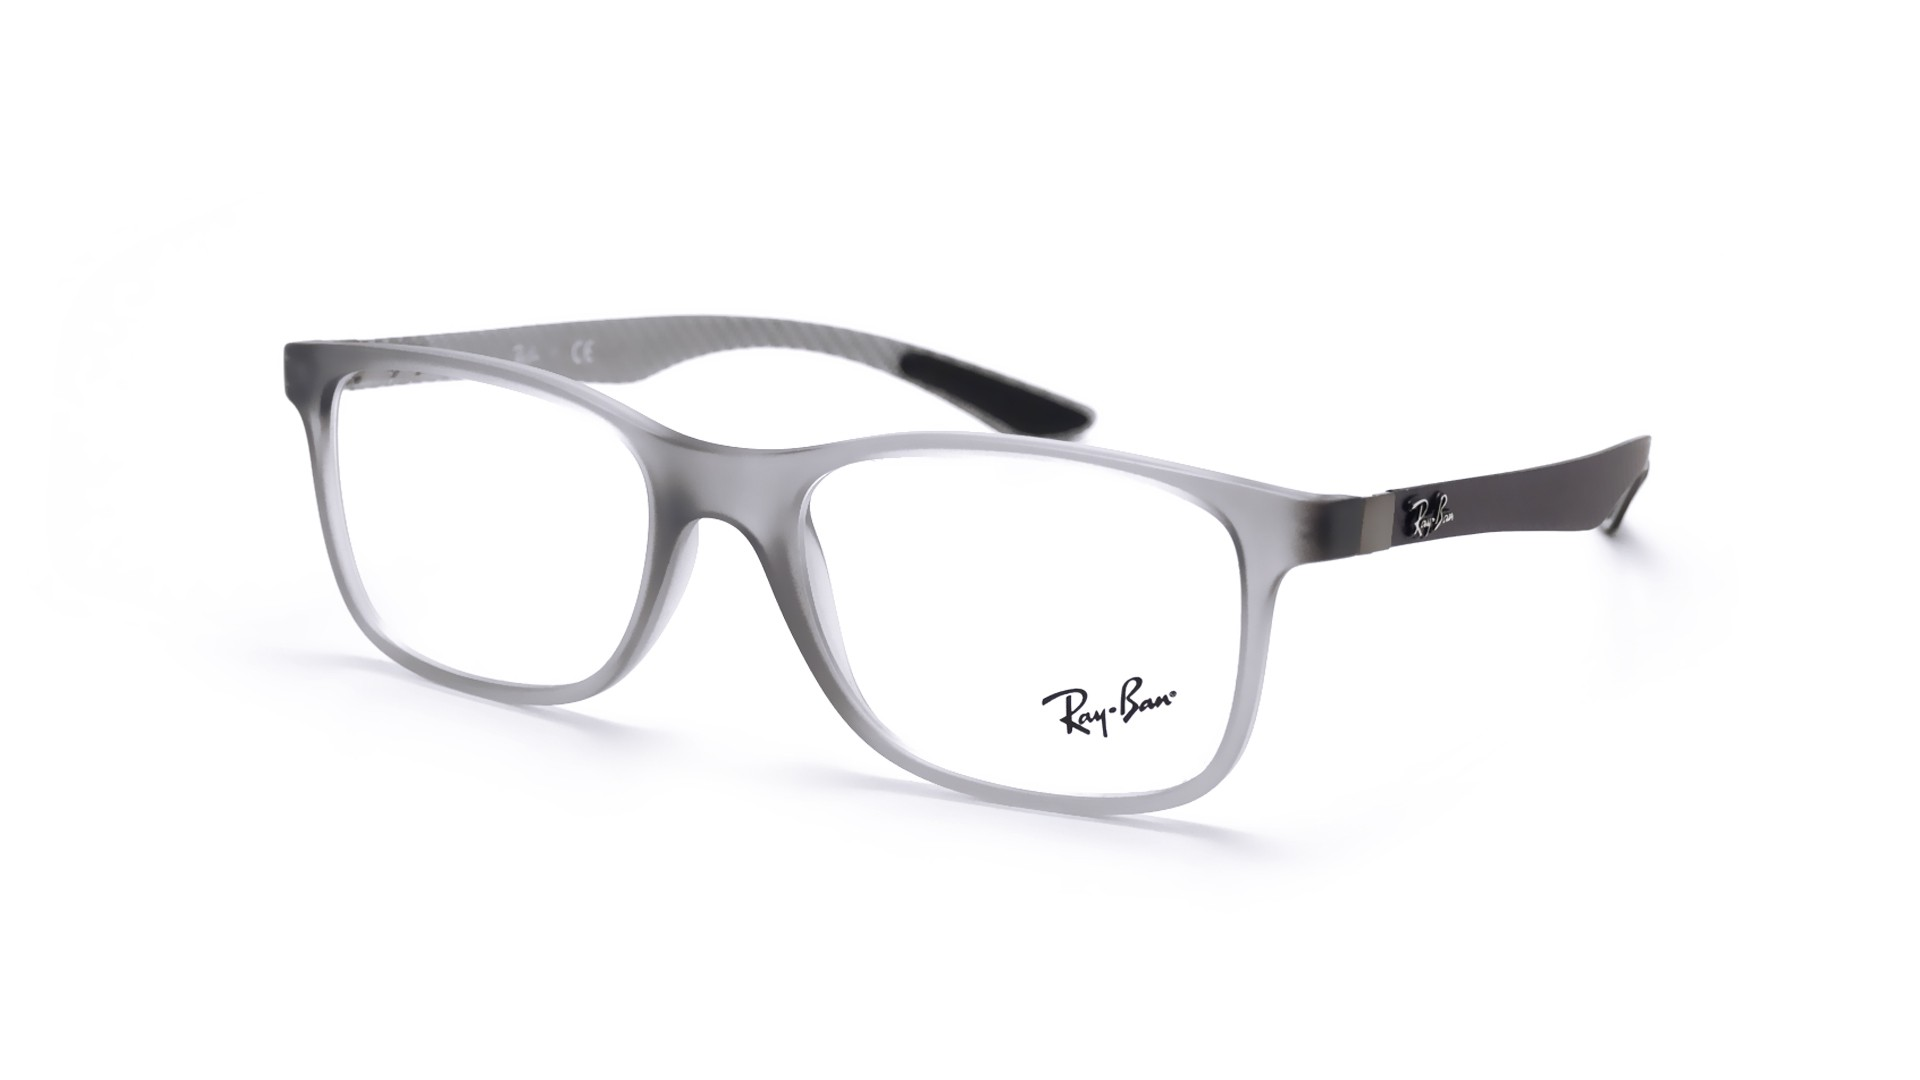 7761f90610 Eyeglasses Ray-Ban RX8903 RB8903 5244 53-18 Grey Matte Medium